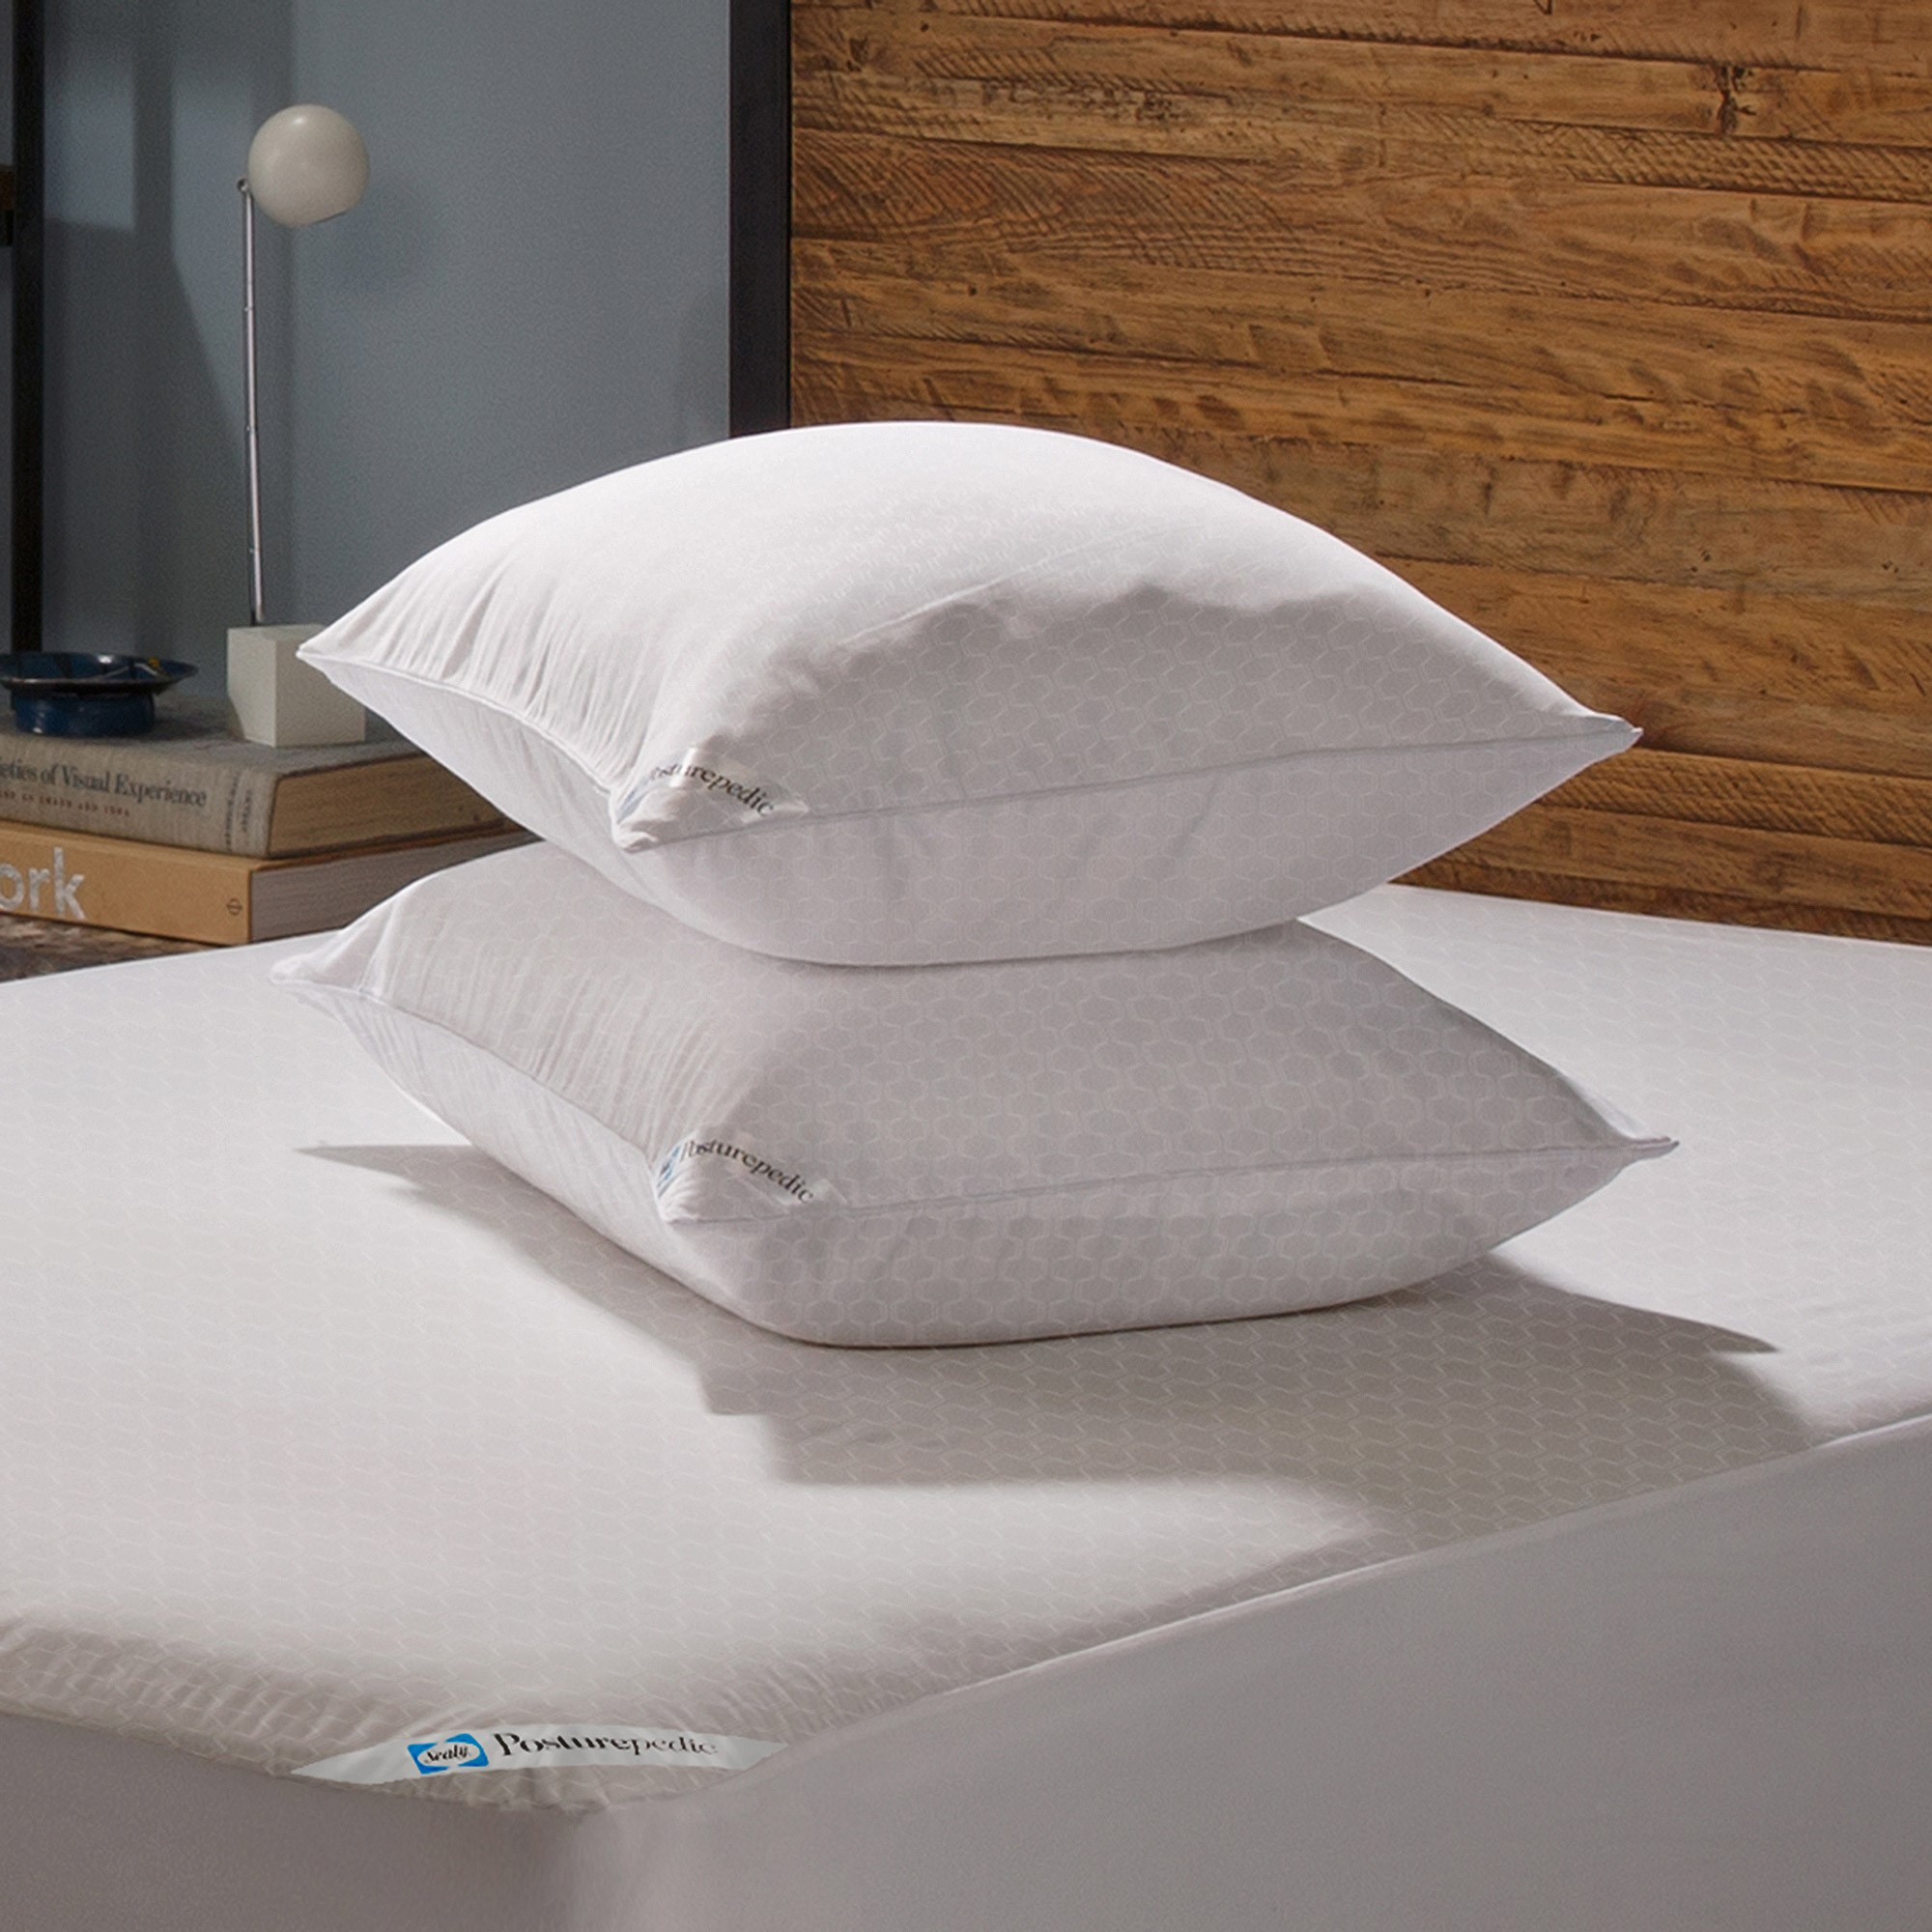 Sealy Posturepedic Allergy Protection Zippered Pillow Protector, 2pk by American Textile